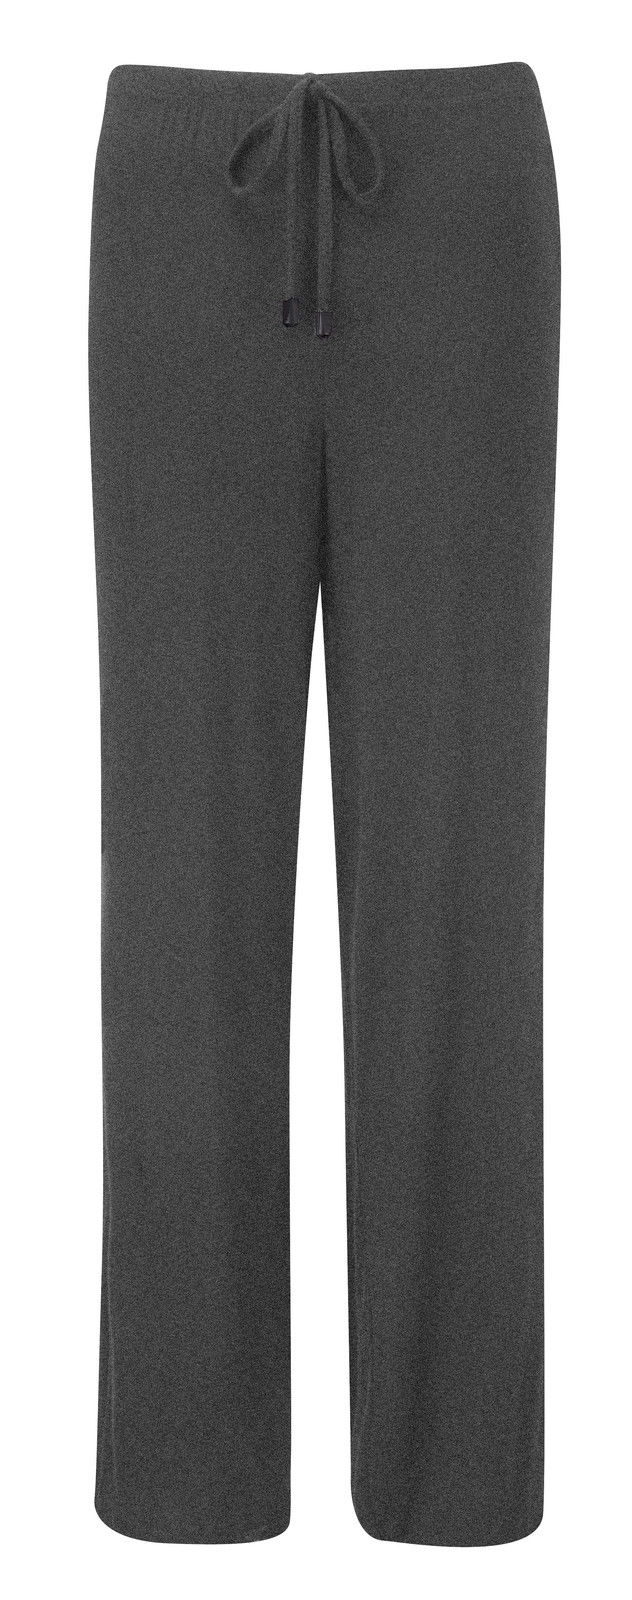 Product Description Soft, cotton jersey pants deliver on style and comfort, no matter the activity.